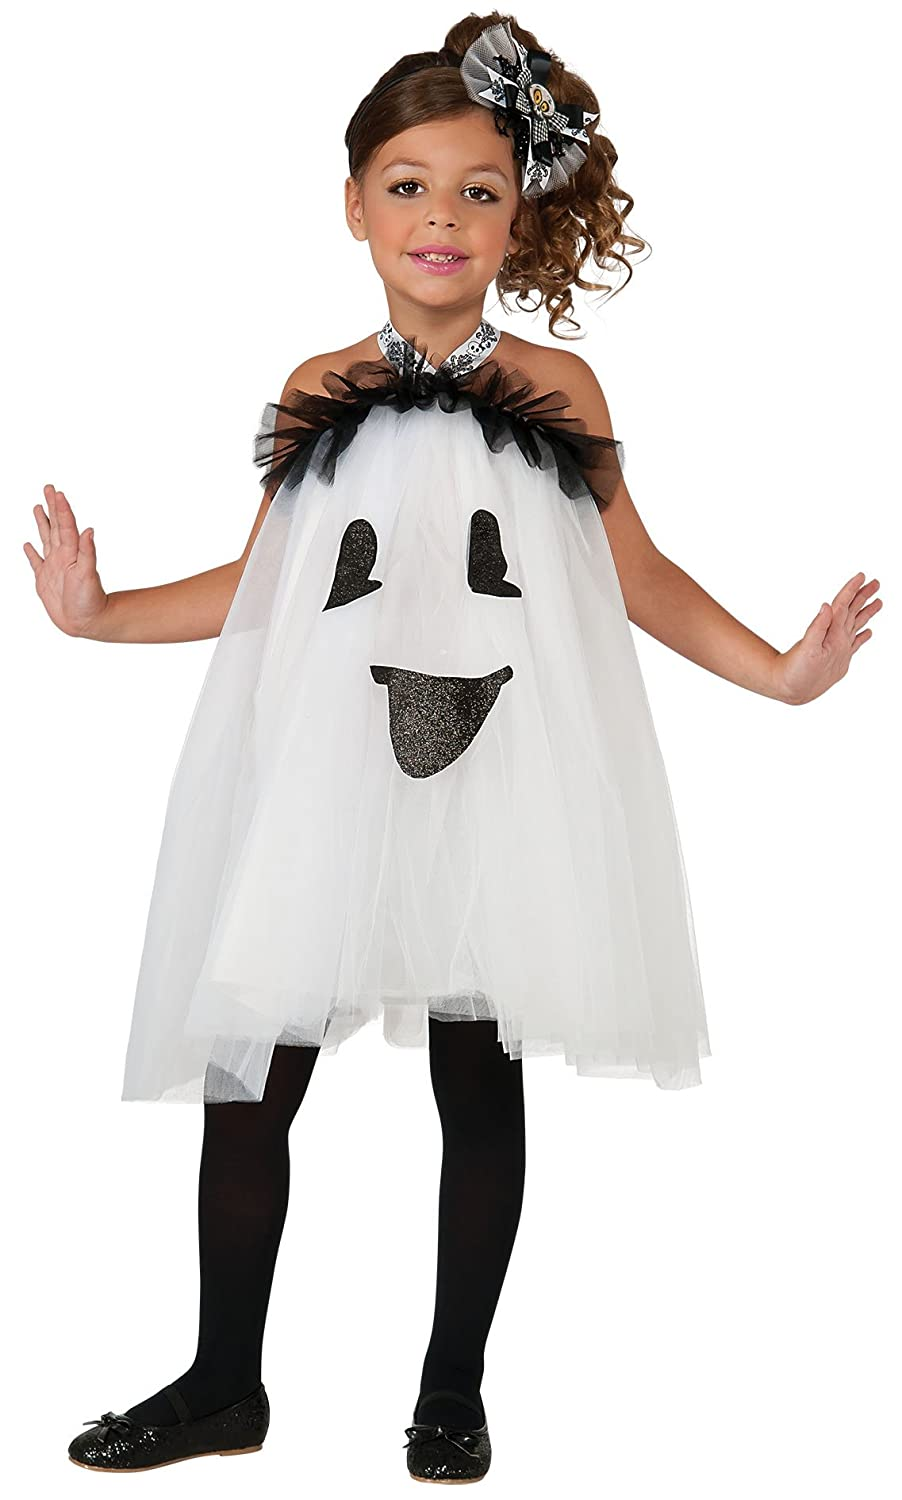 Amazon.com: Rubies Ghost Tutu Dress Costume, Toddler: Toys & Games